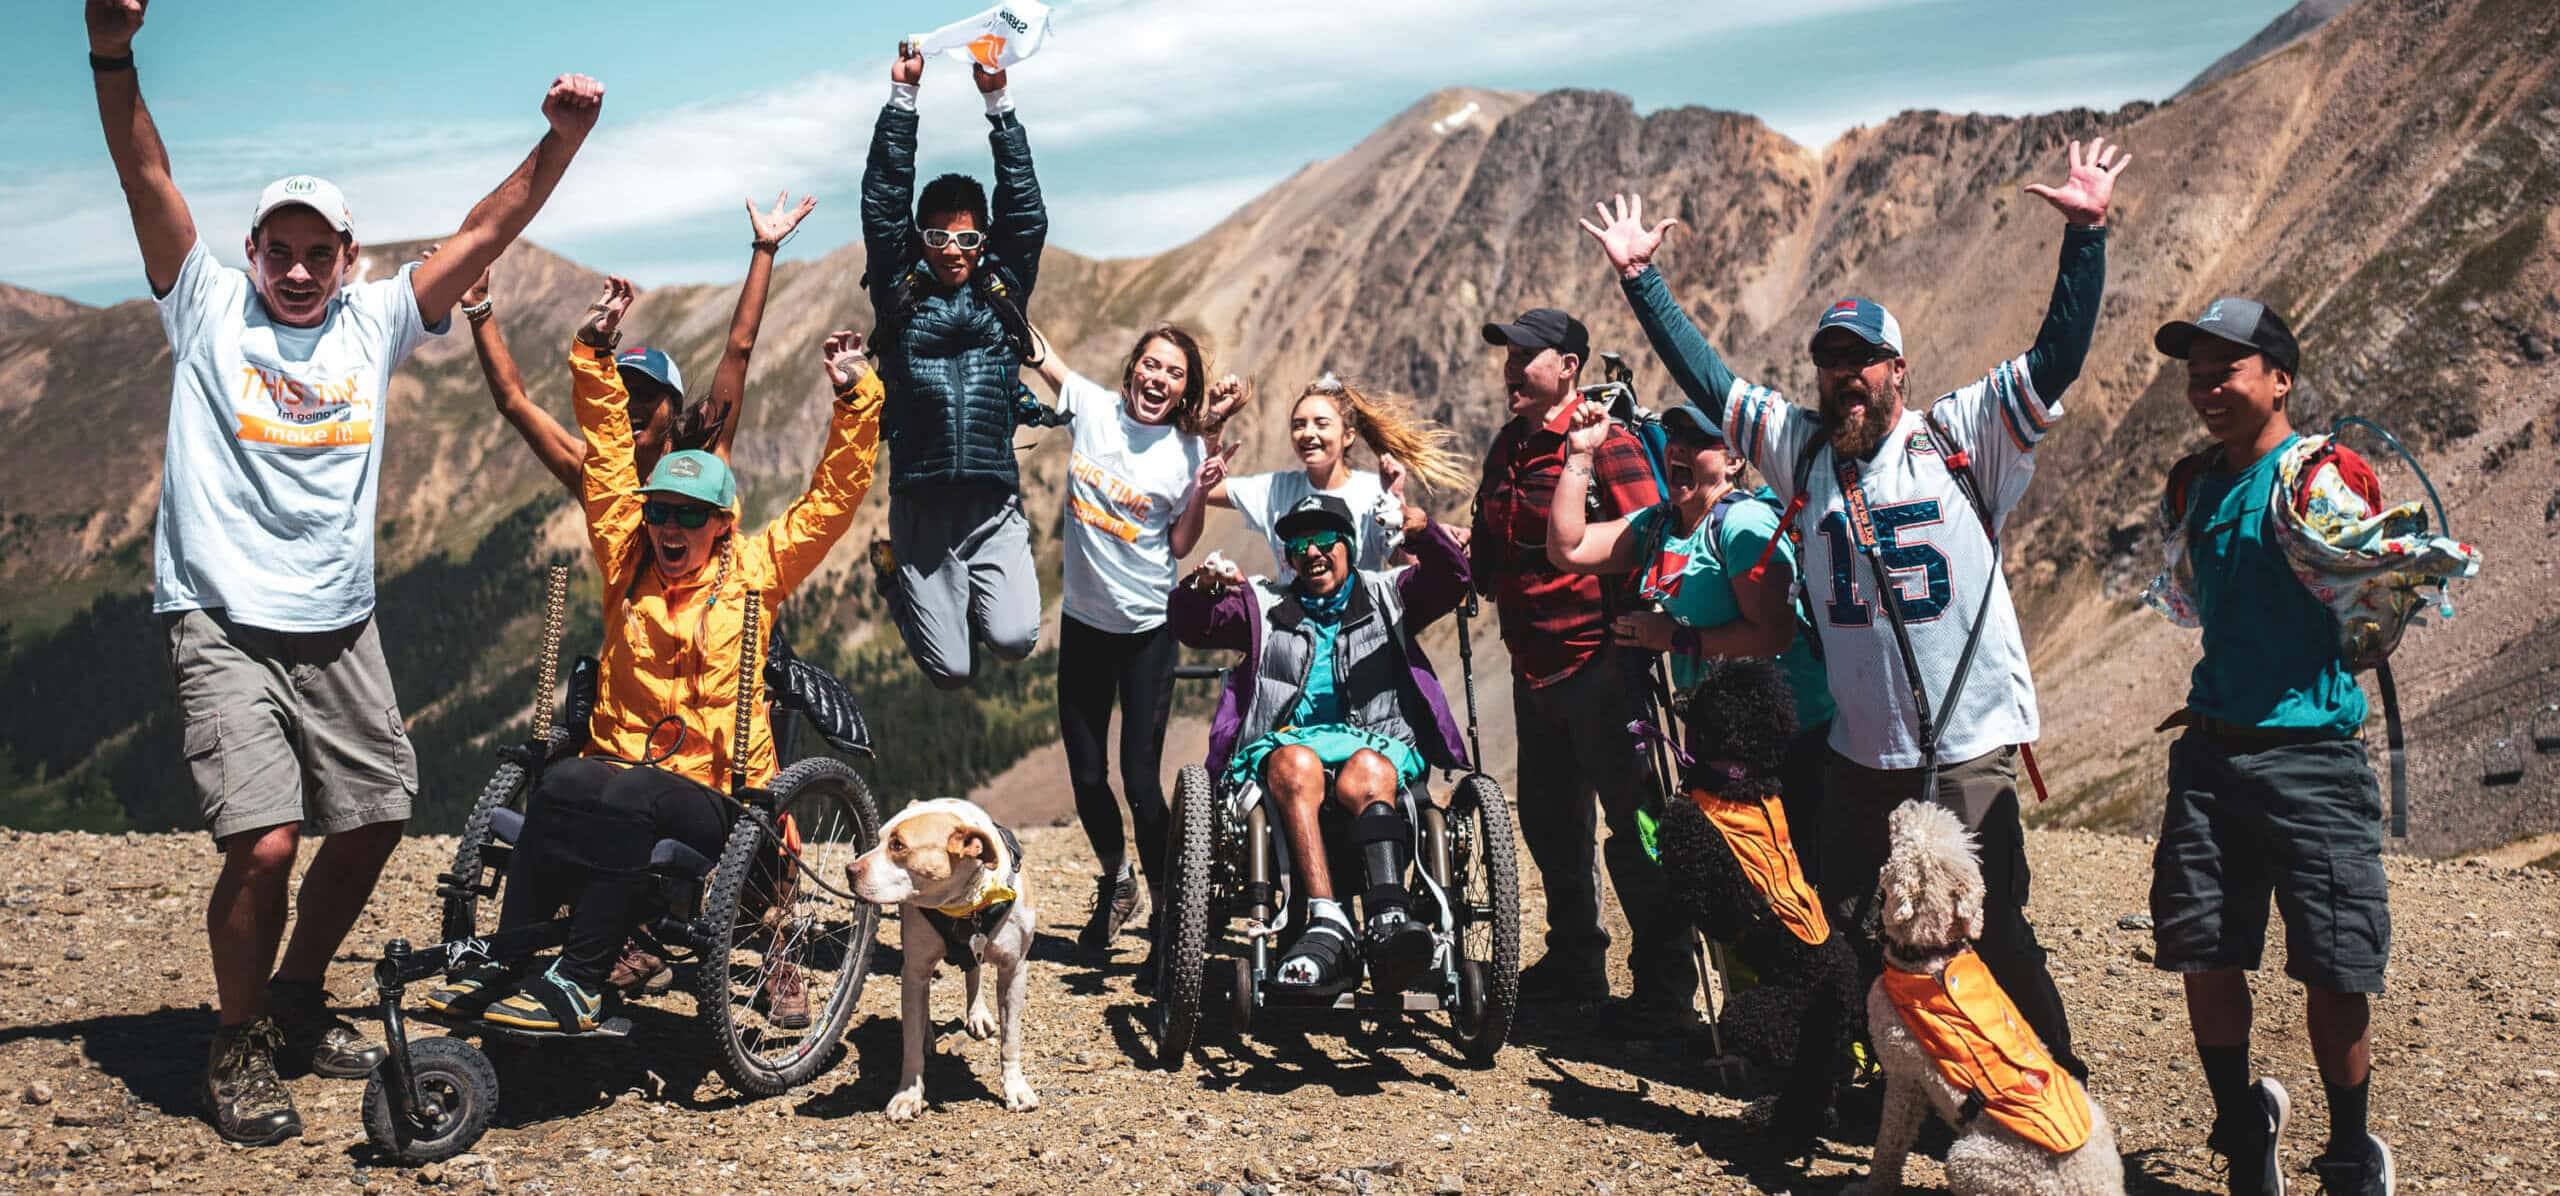 Group of mixed ability individuals jumping while at summit of a mountain